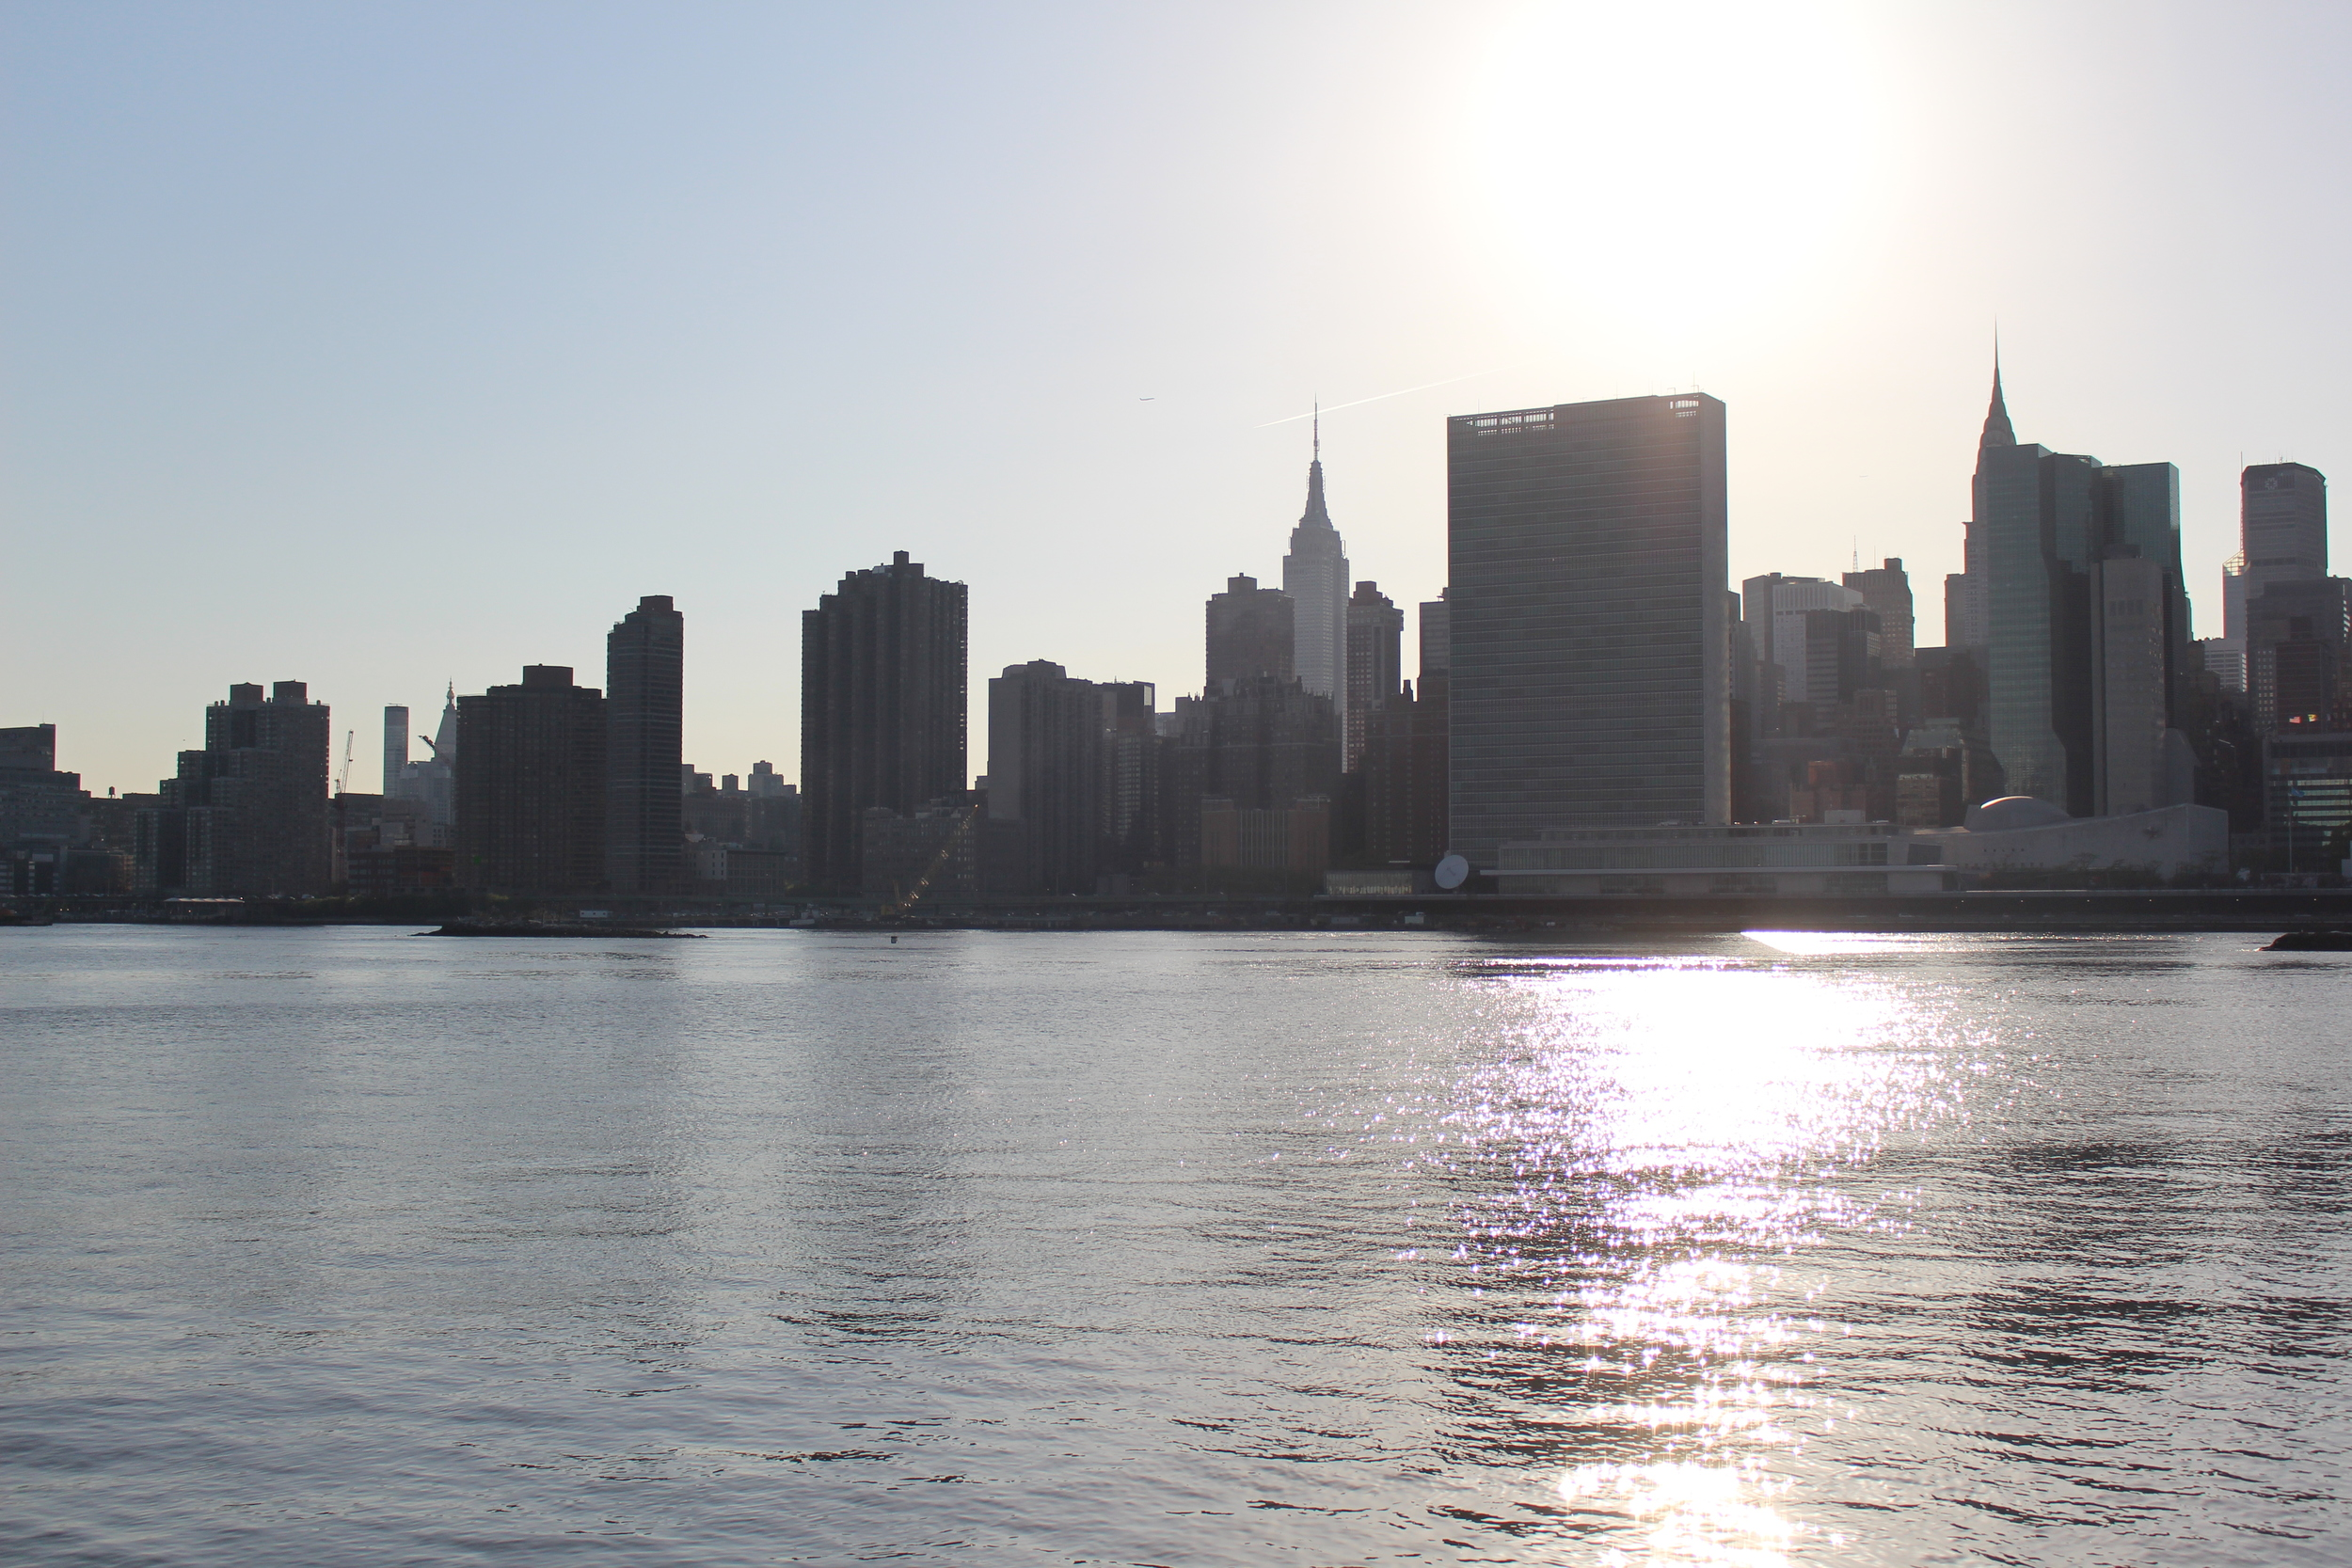 Manhattan view from Long Island City waterfront